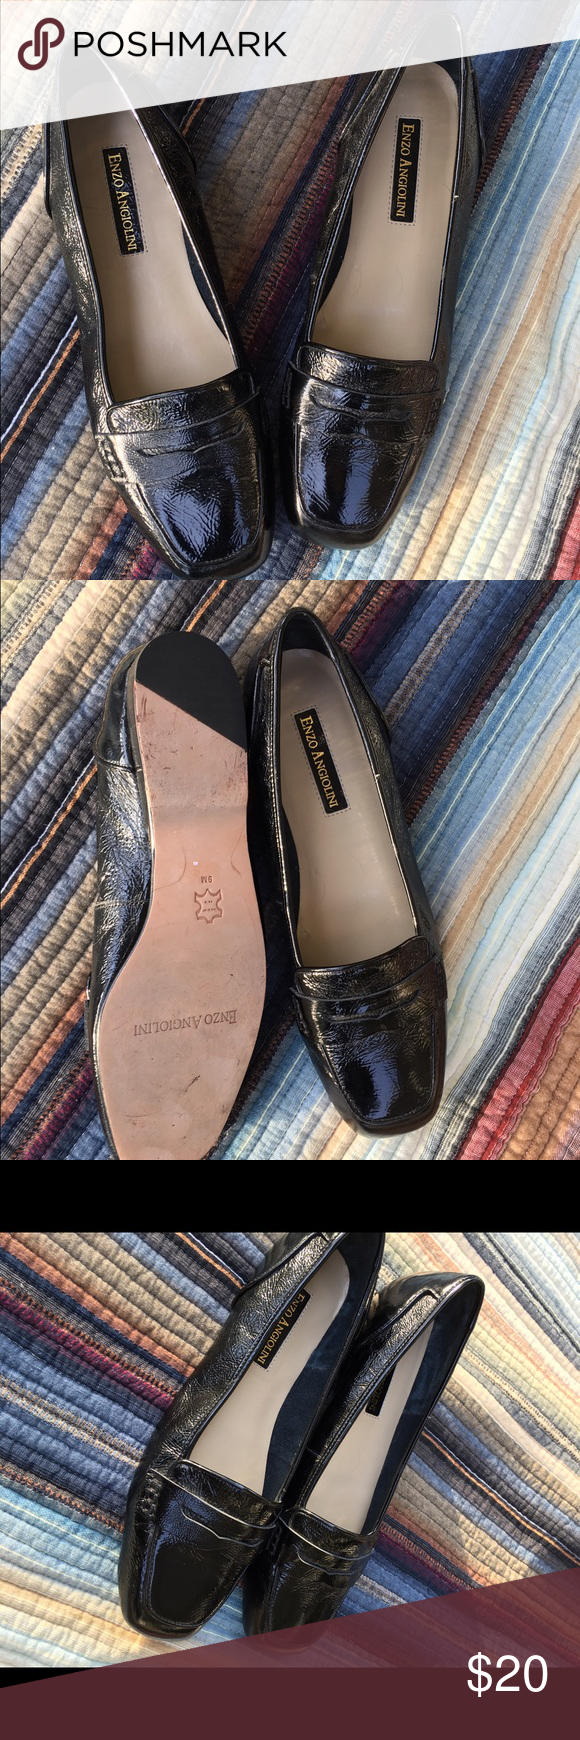 Enzo Angiolini patent leather loafers black Looking for *the* perfect little black loafers? Gorgeous, very gently pre loved, patent leather black loafers. Gorgeous condition! Size 9. Enzo Angiolini Shoes Flats & Loafers